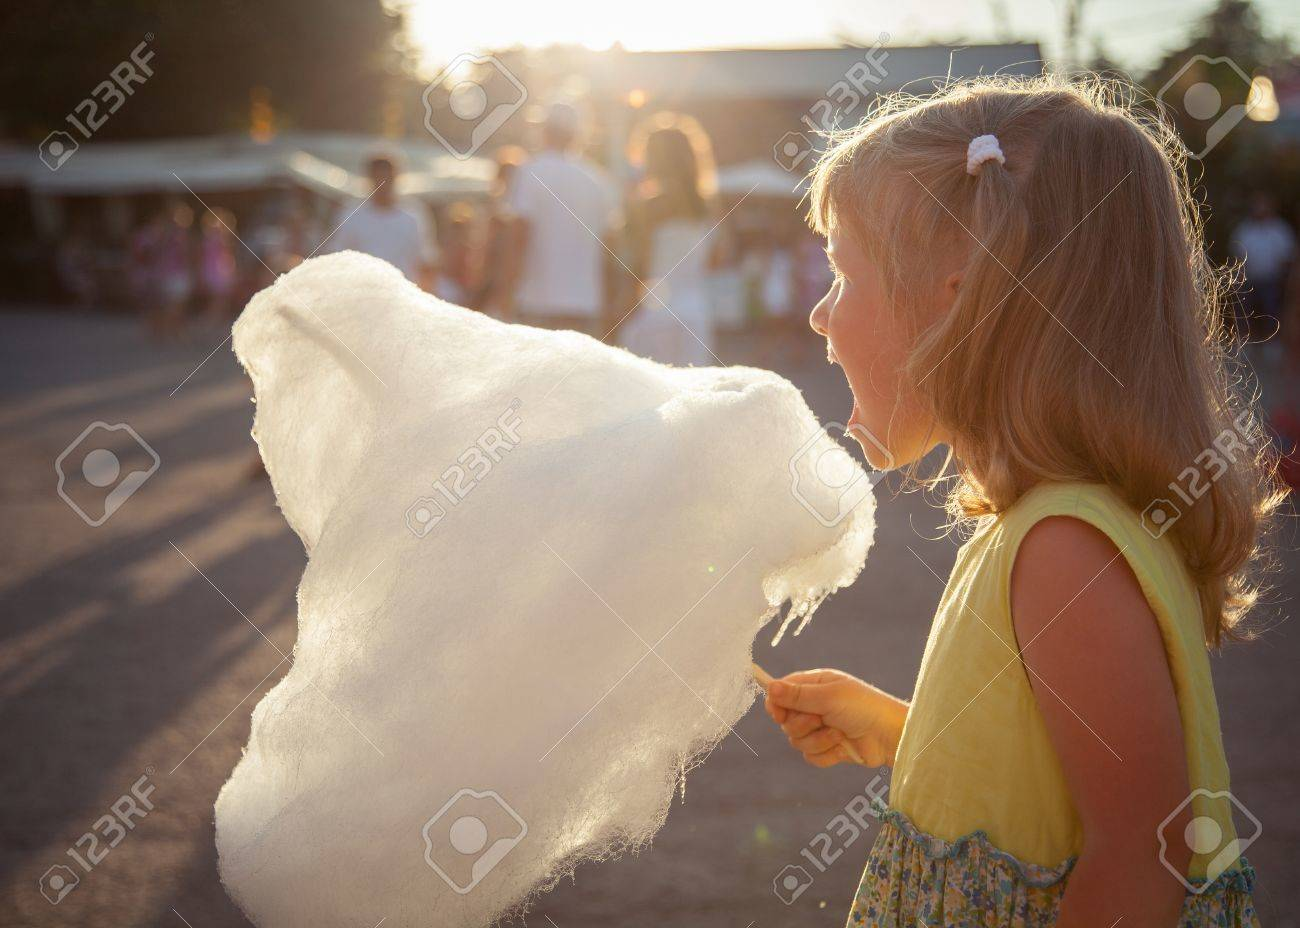 Charming little girl eating cotton candy - 21319447